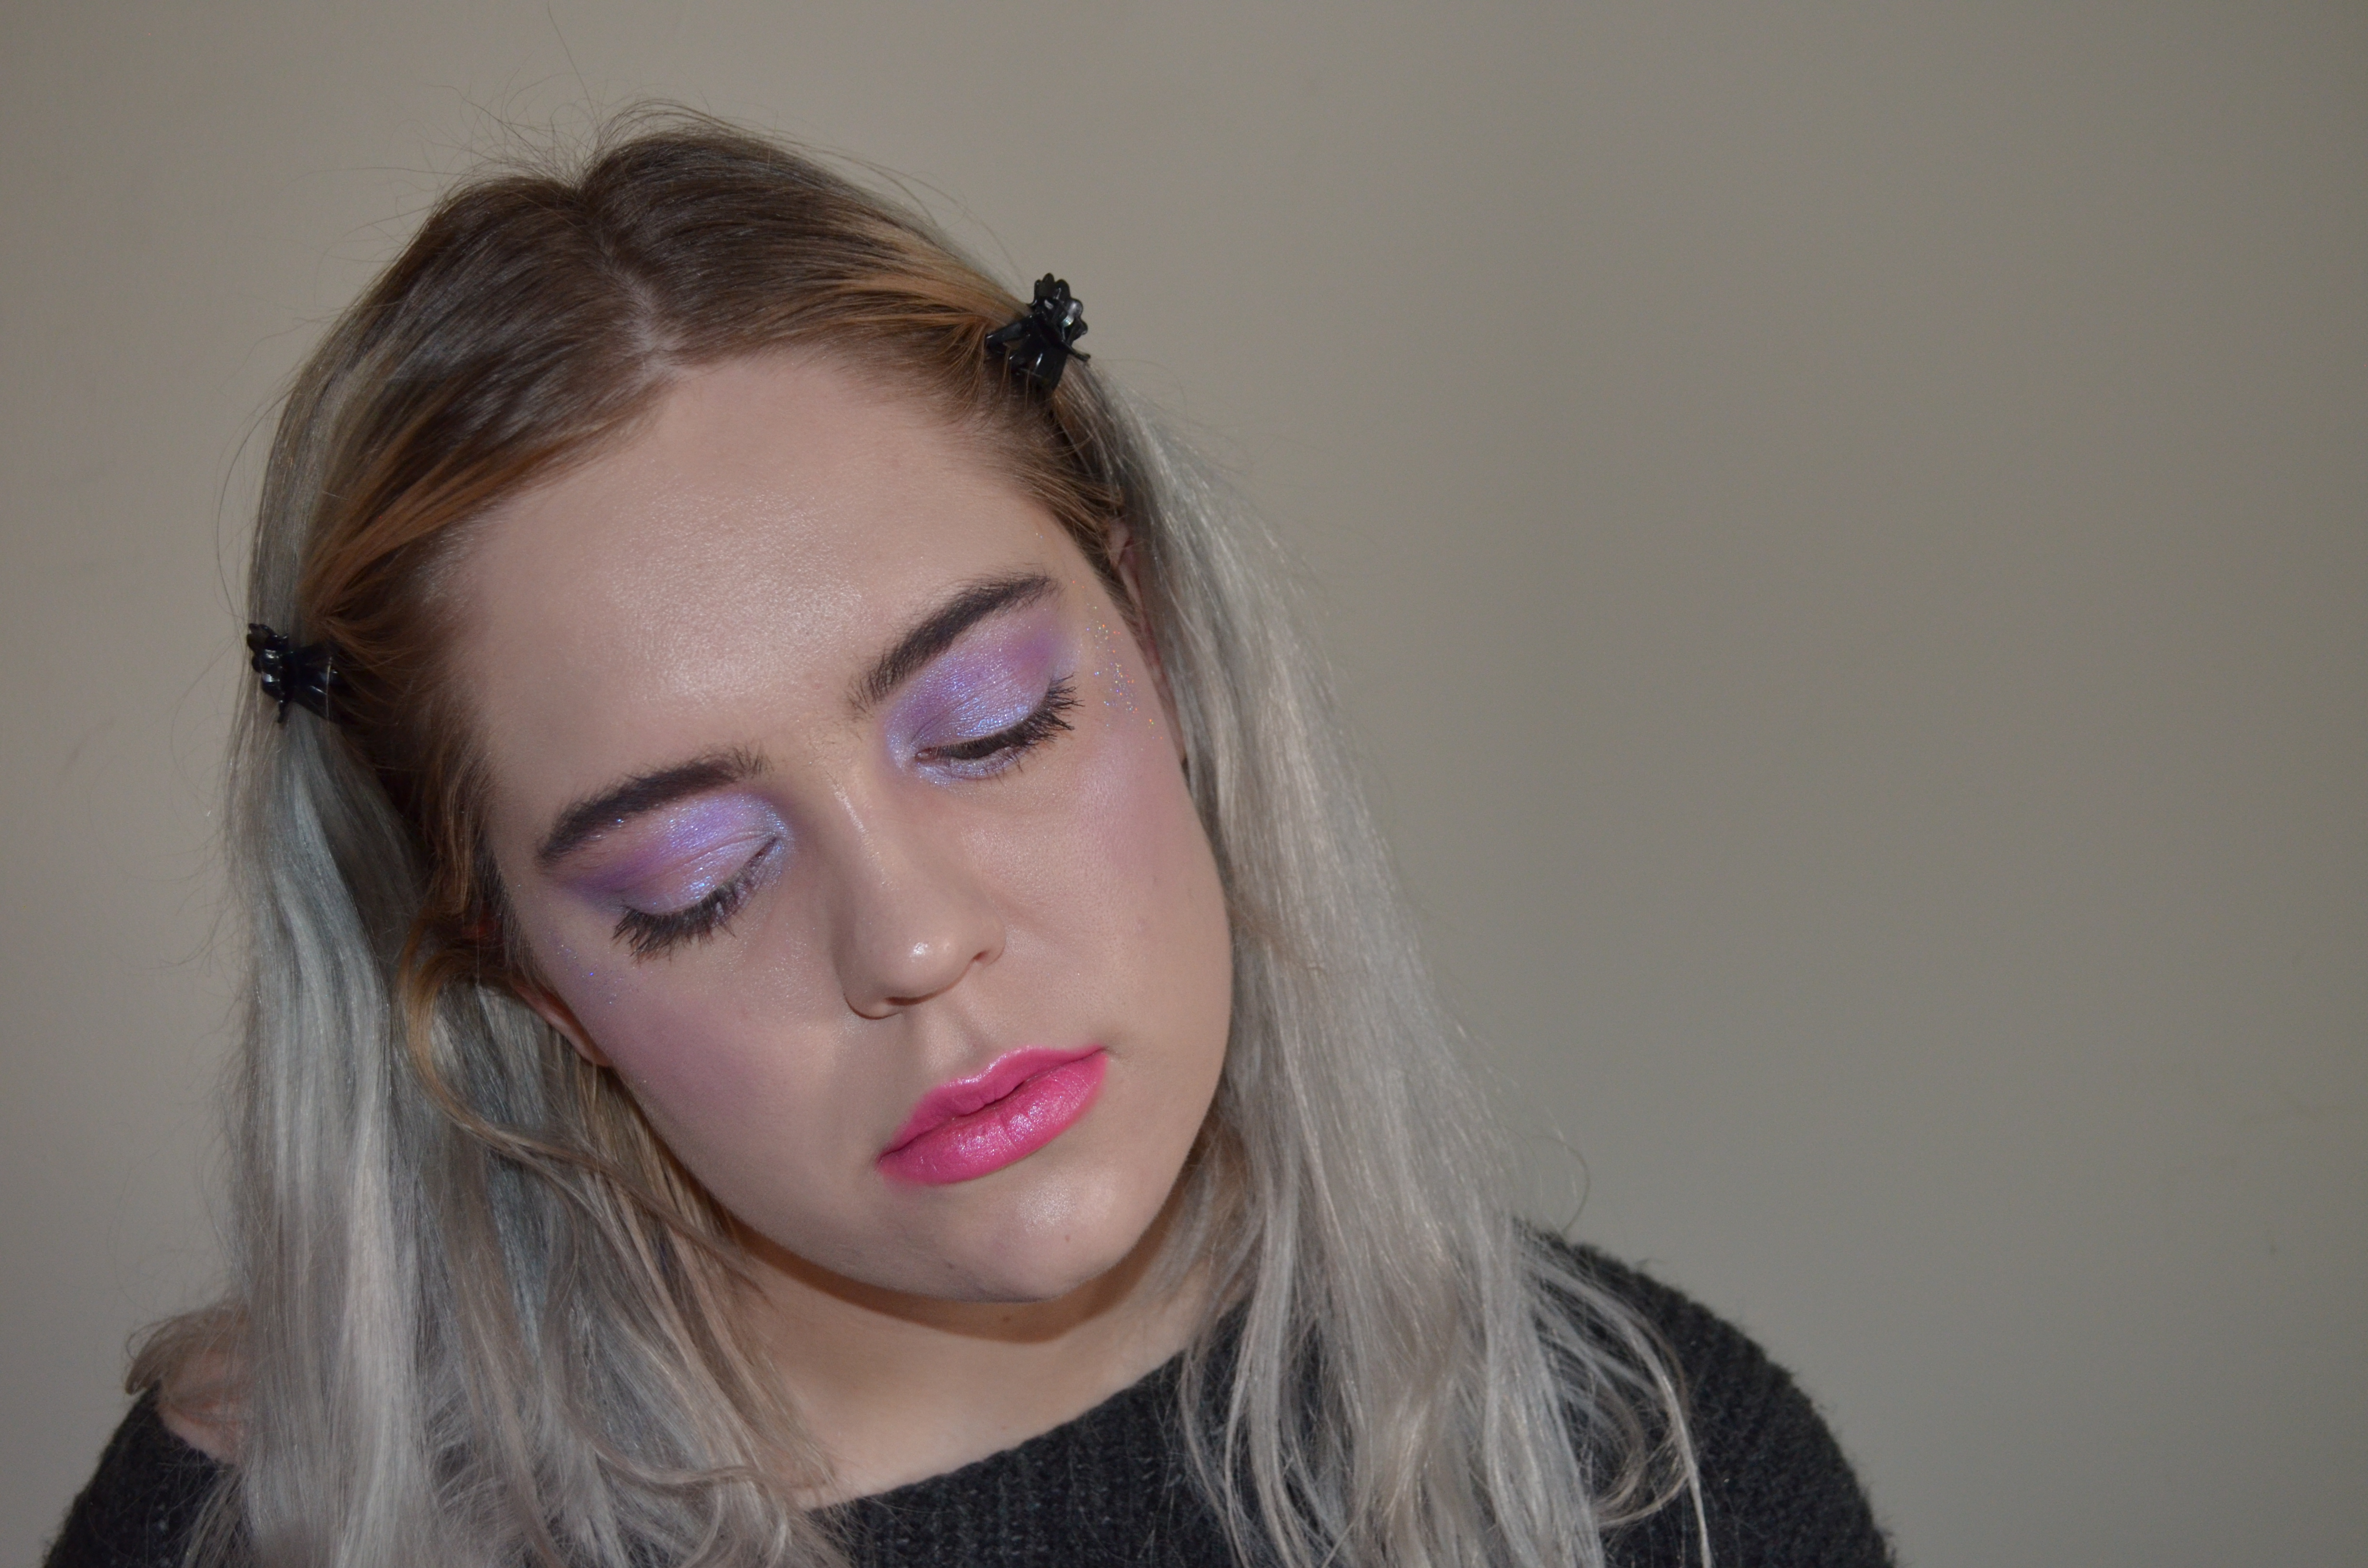 How to create a fun, colorful makeup look inspired by your